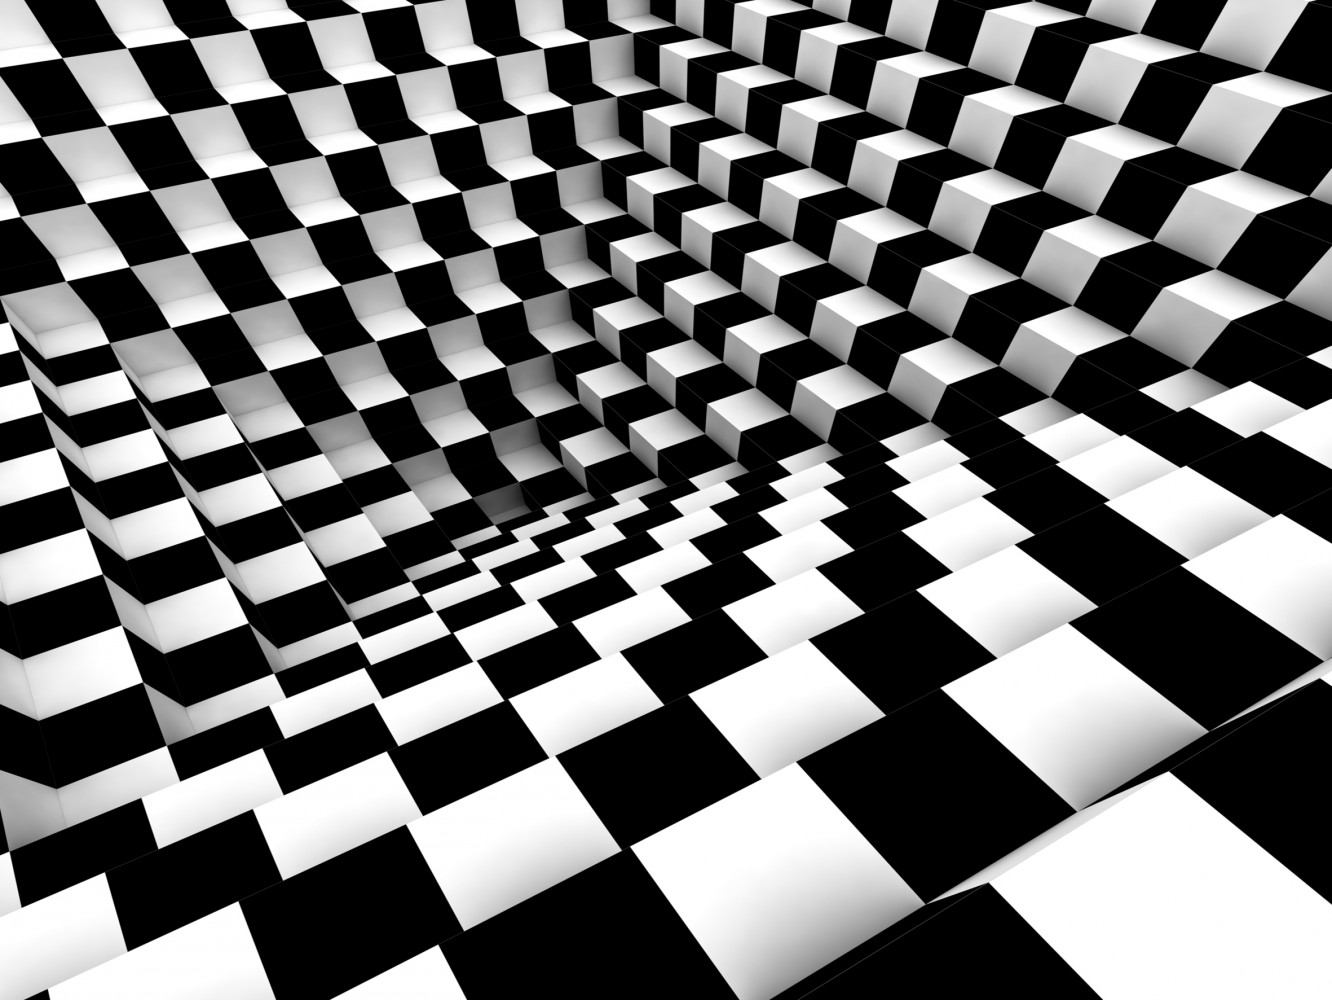 Wall mural wallpaper chess pattern 3d effect photo 360 cm for Black and white wall mural wallpaper